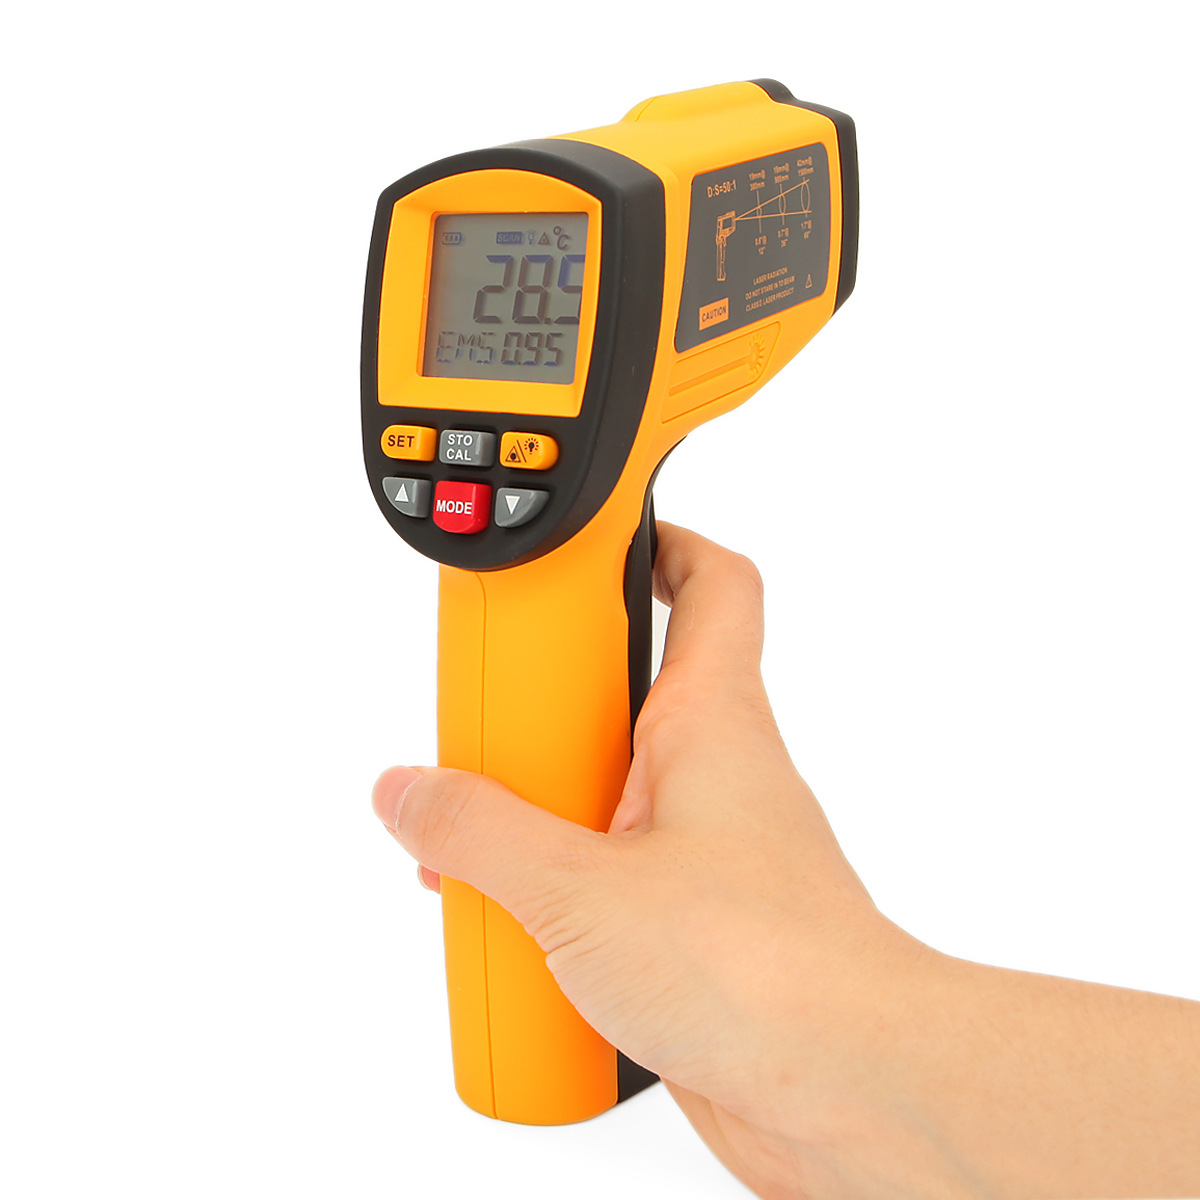 GM1150A LCD Non-Contact Digital 0~2102F Pyrometer 0.1~1 EM Celsius Laser IR Infrared Thermometer -18-1150 C цена 2016